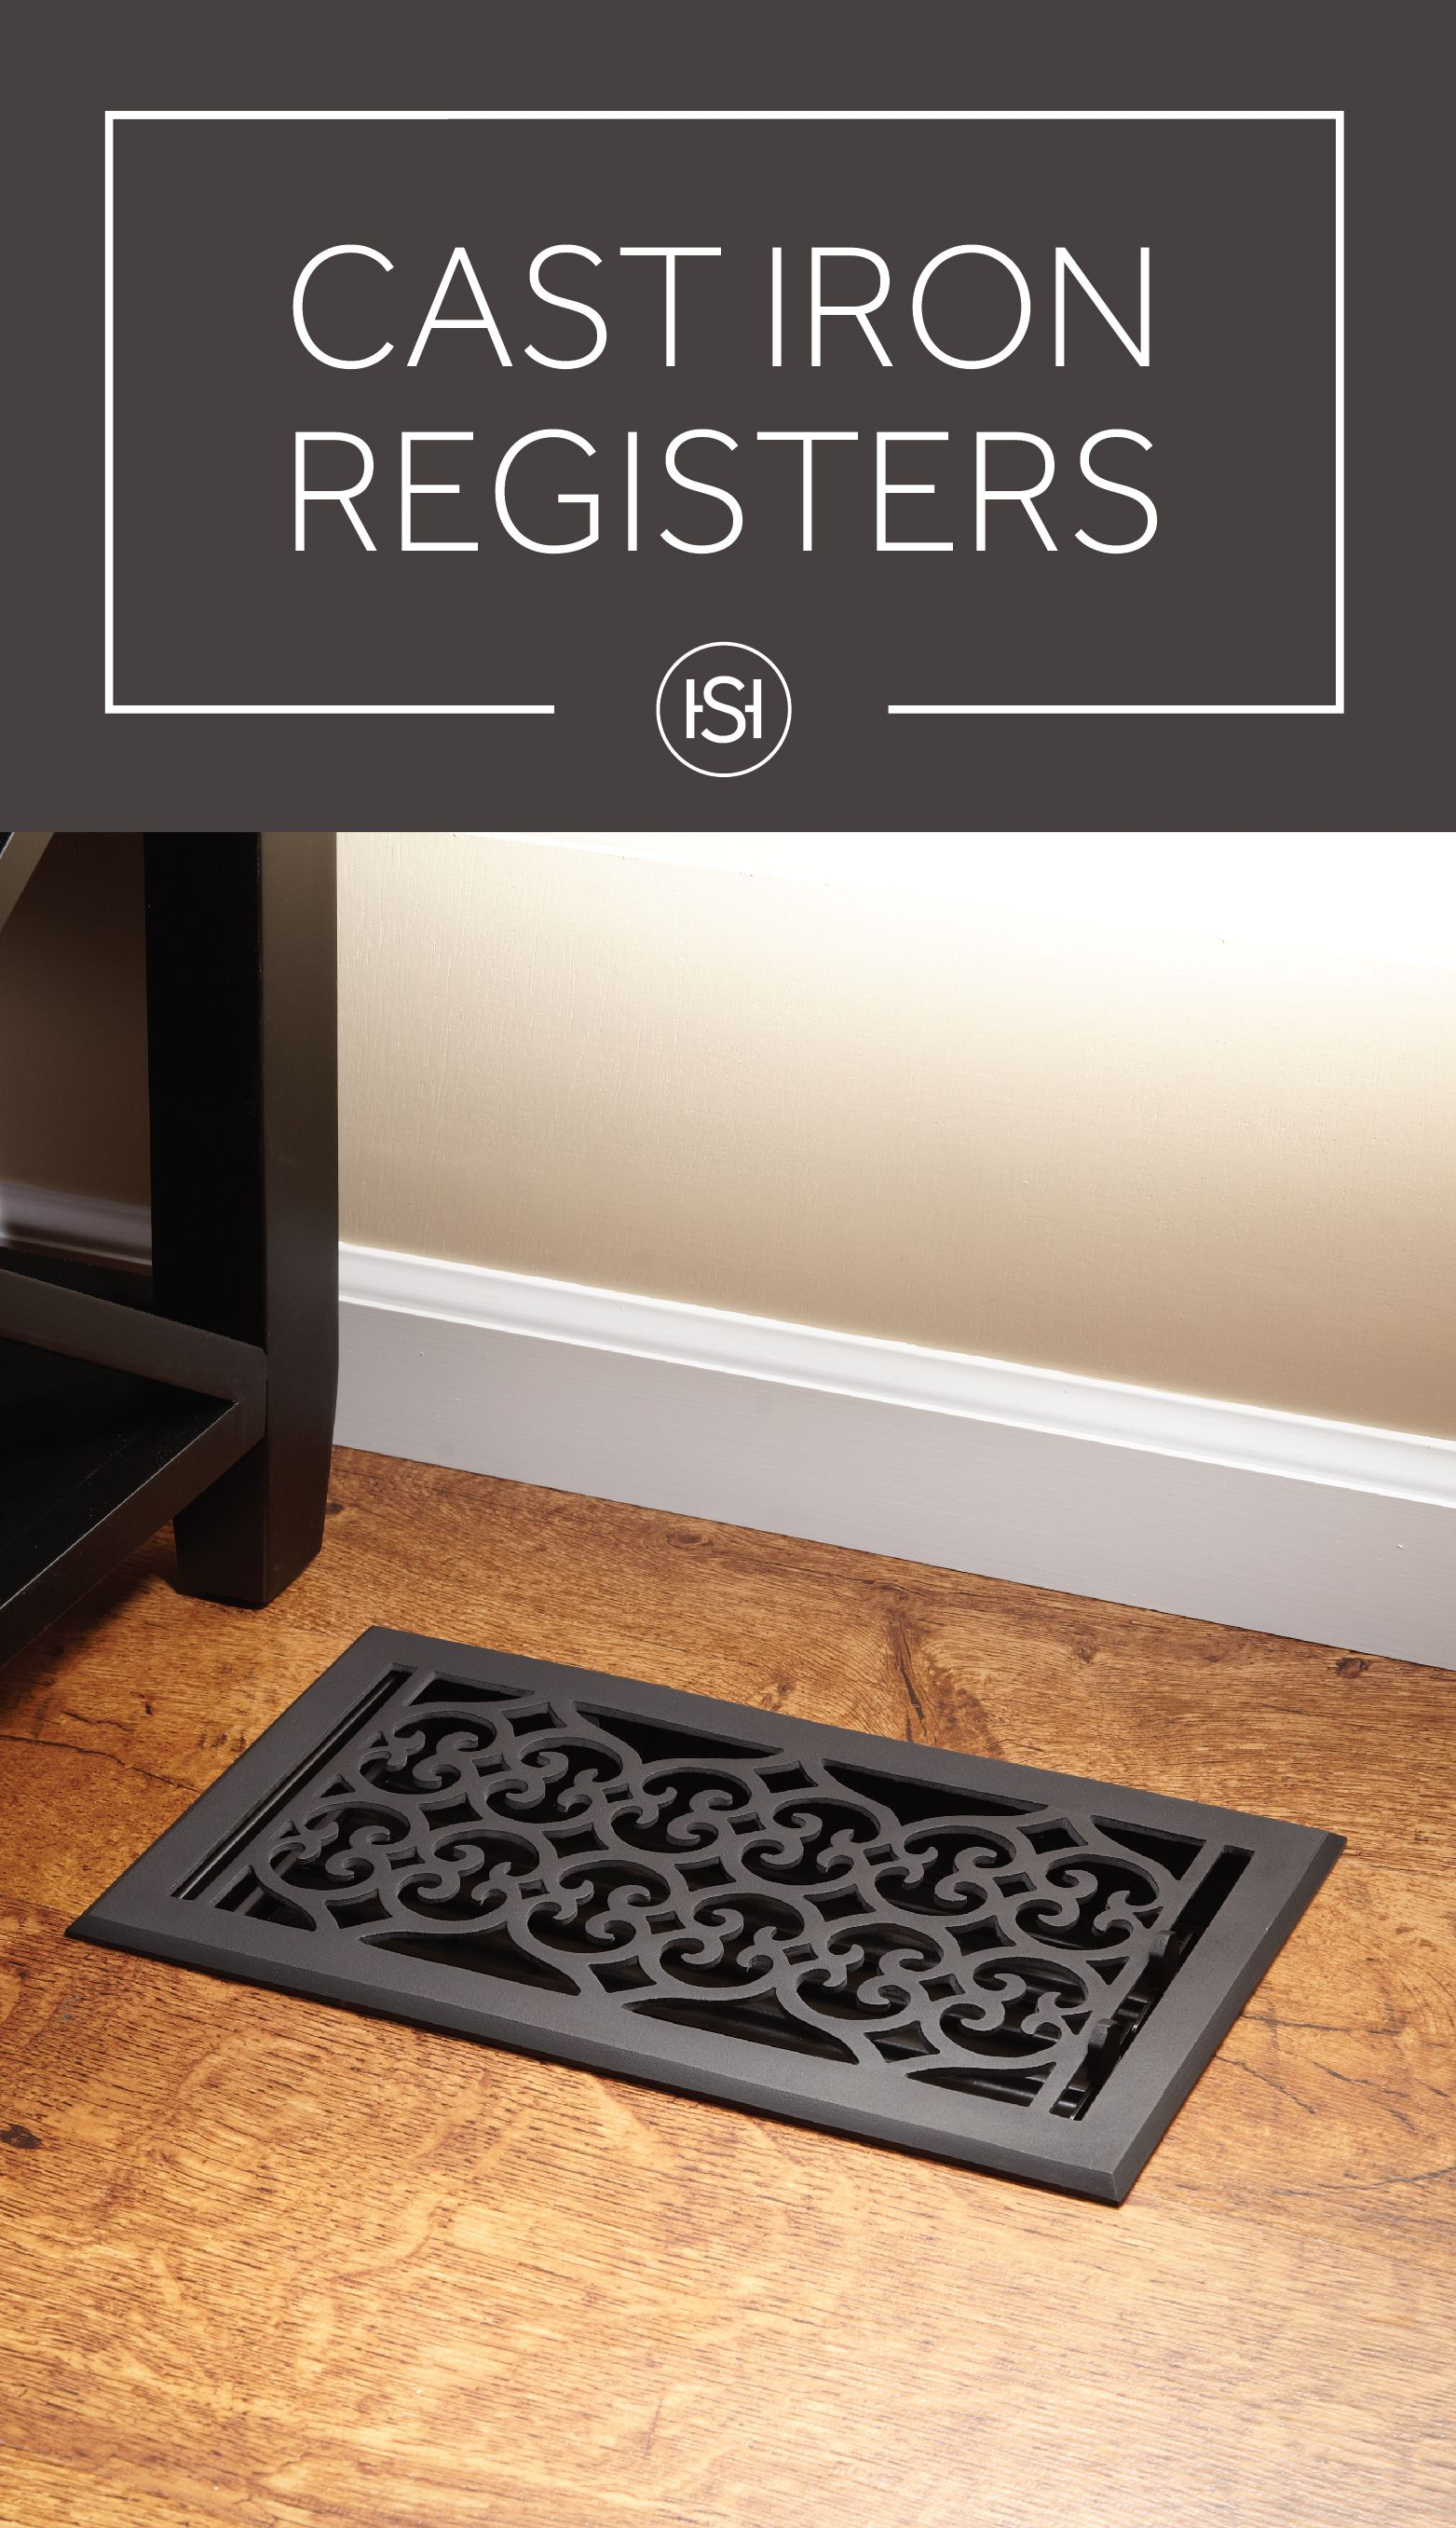 Our Selection Of Cast Iron Registers Come In A Variety Of